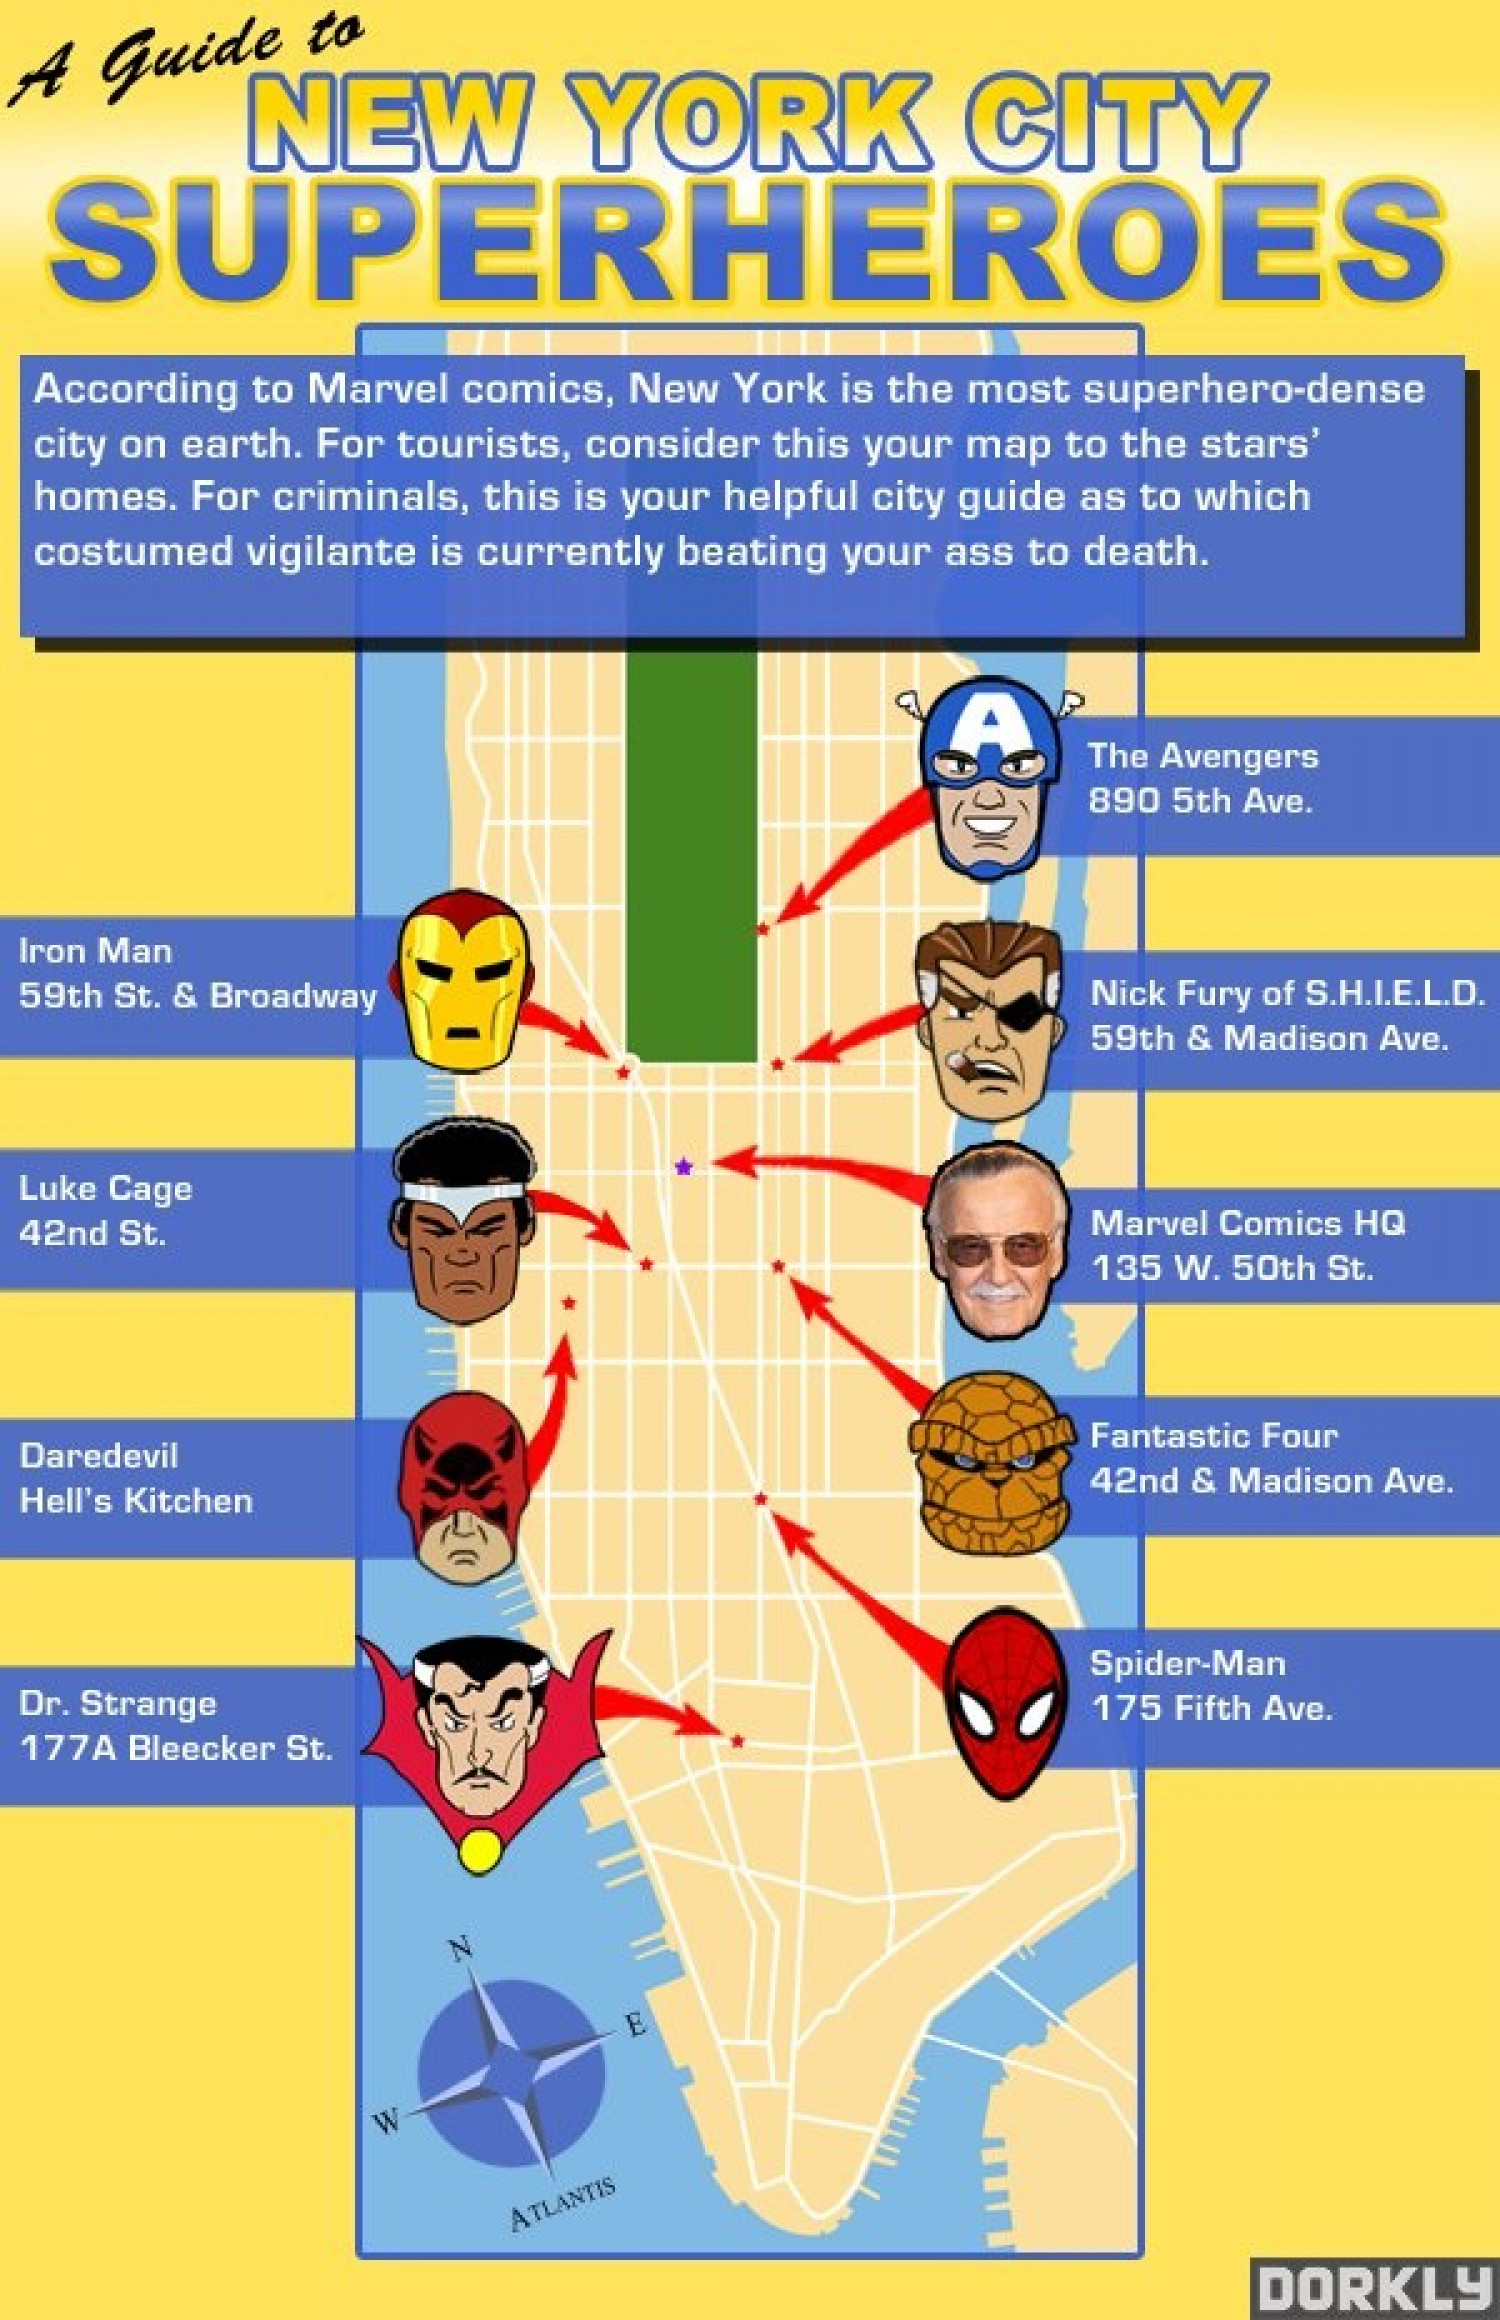 New York City Superheroes Infographic